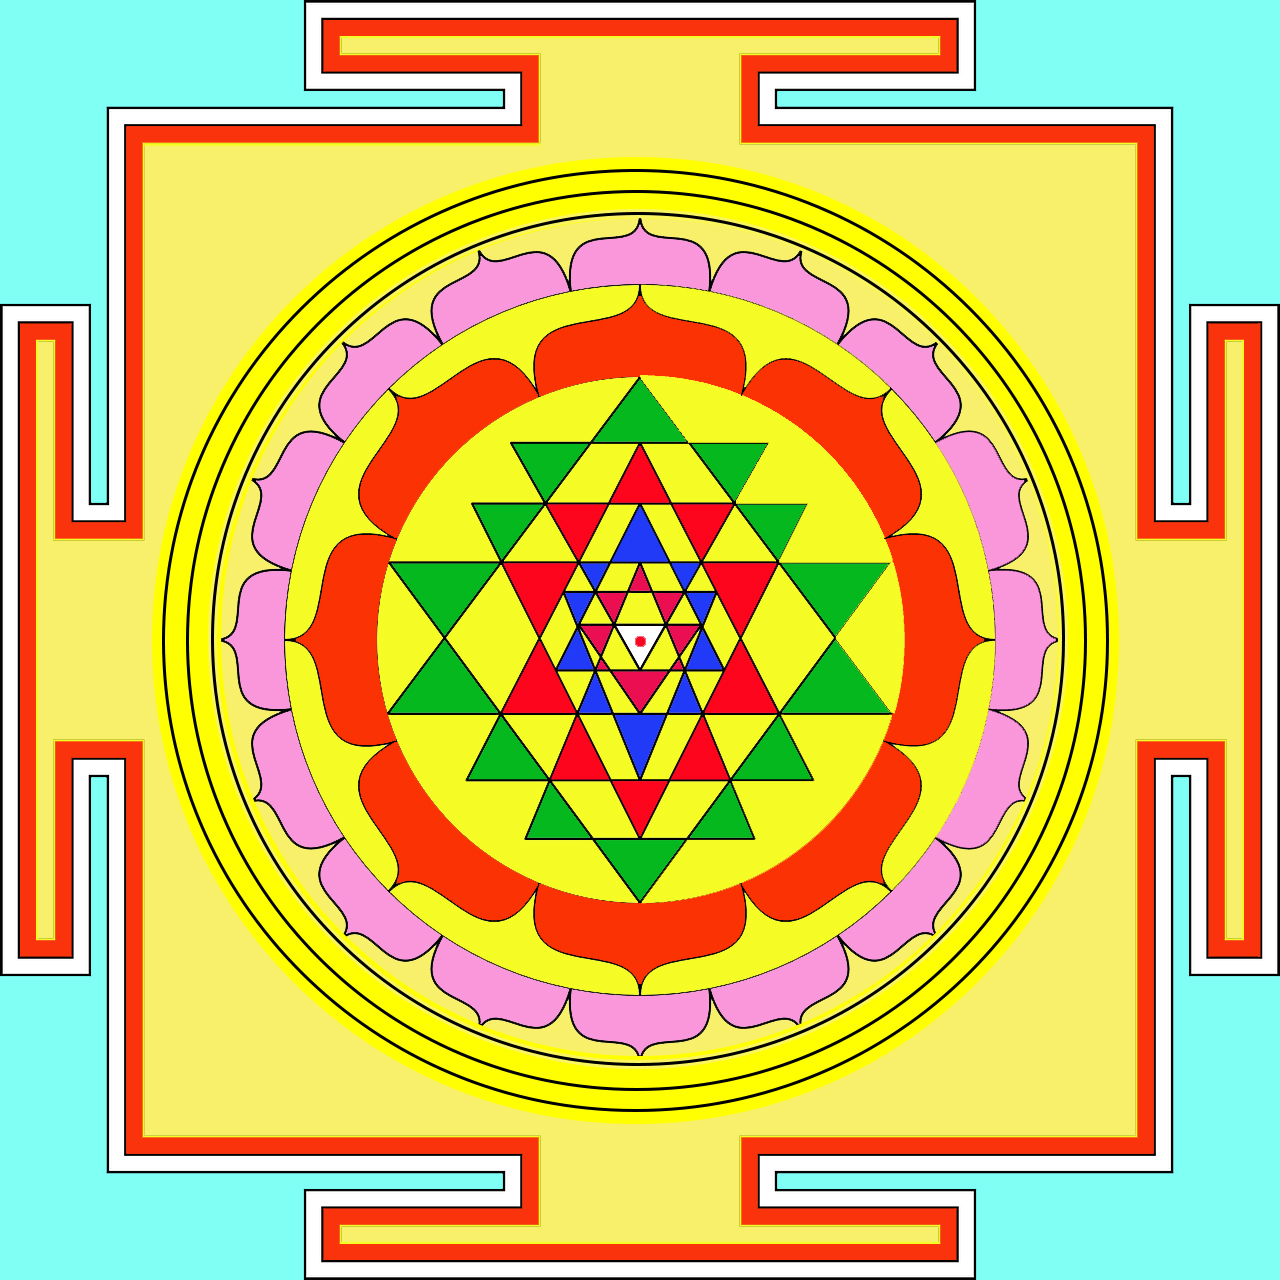 Sri Yantra Meditation on four square symbol